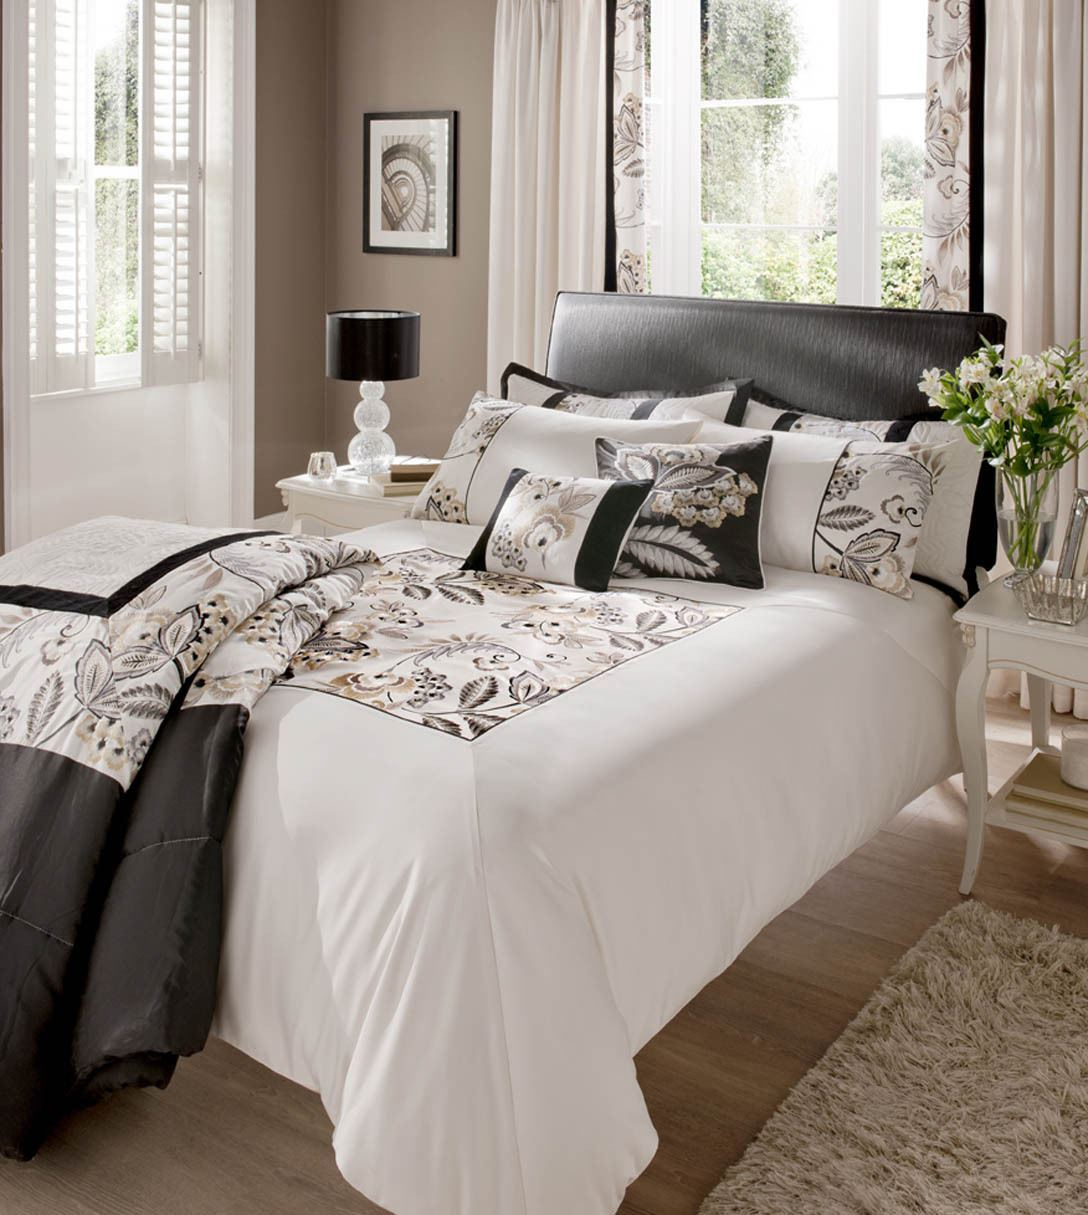 neue shrewsbury schwarz und wei gold bestickte bettw sche quilt set bettbezug ebay. Black Bedroom Furniture Sets. Home Design Ideas